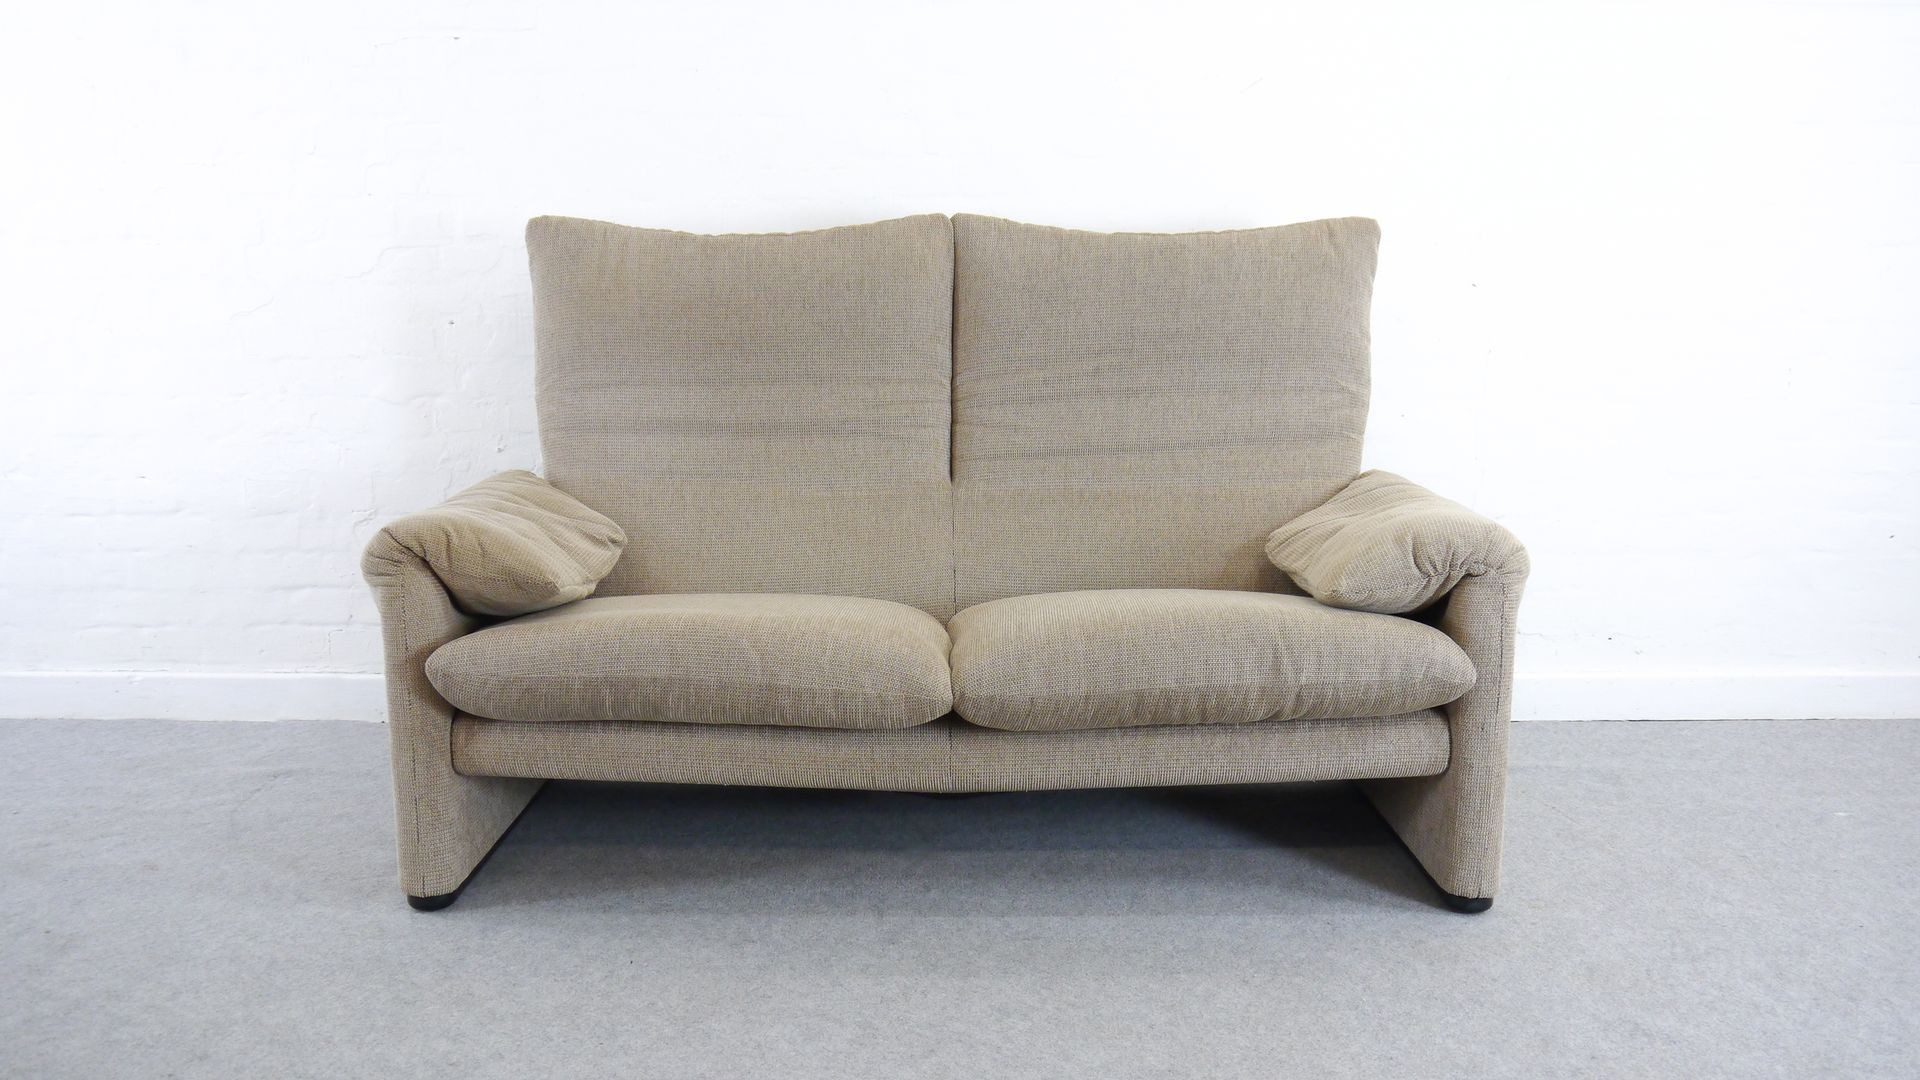 Maralunga Sessel Vintage Maralunga 2 Seater Sofa By Vico Magistretti For Cassina